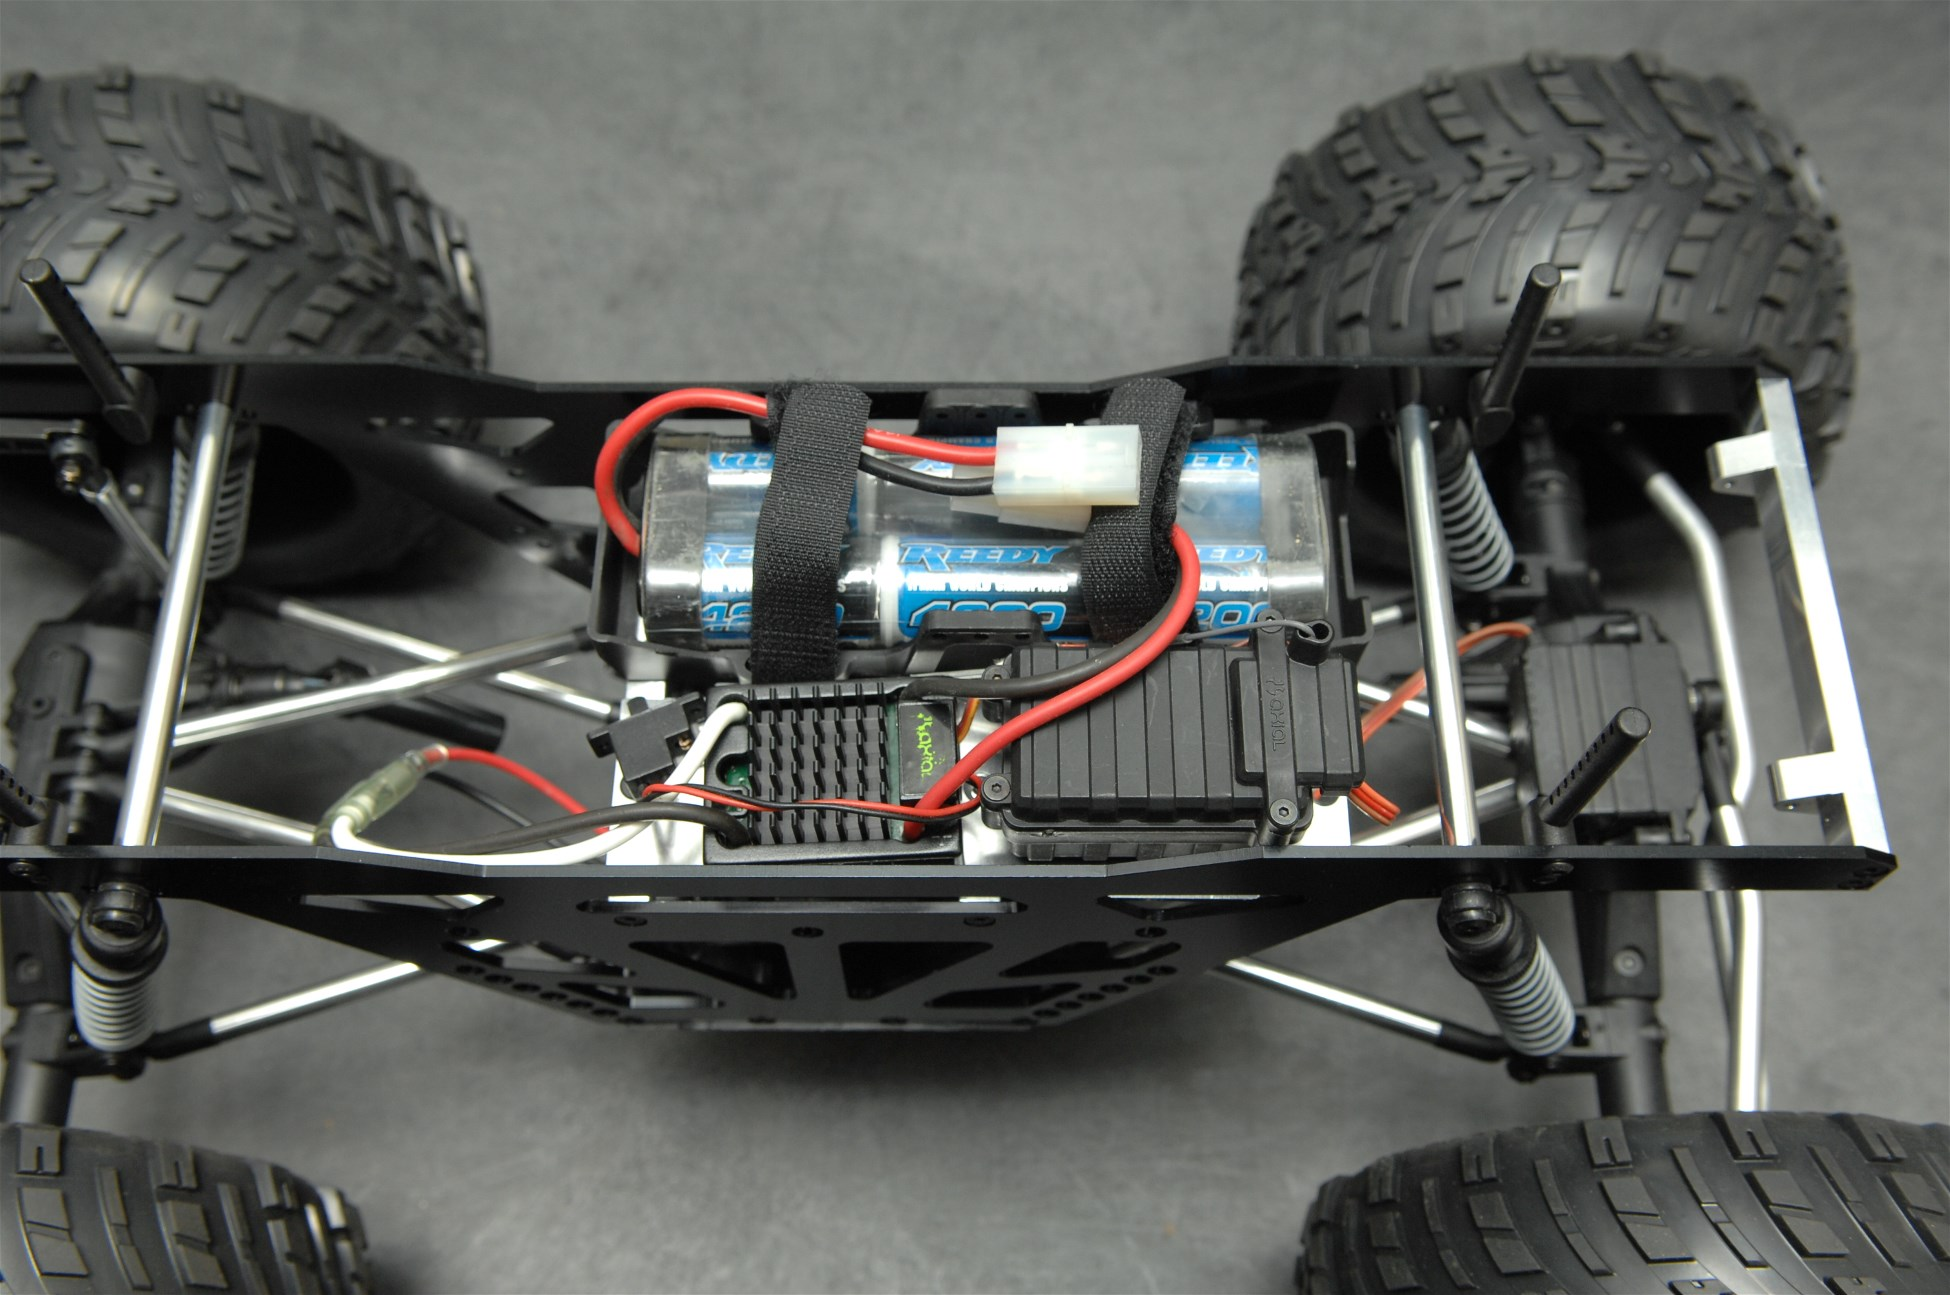 low cg chassis design - HD1950×1295